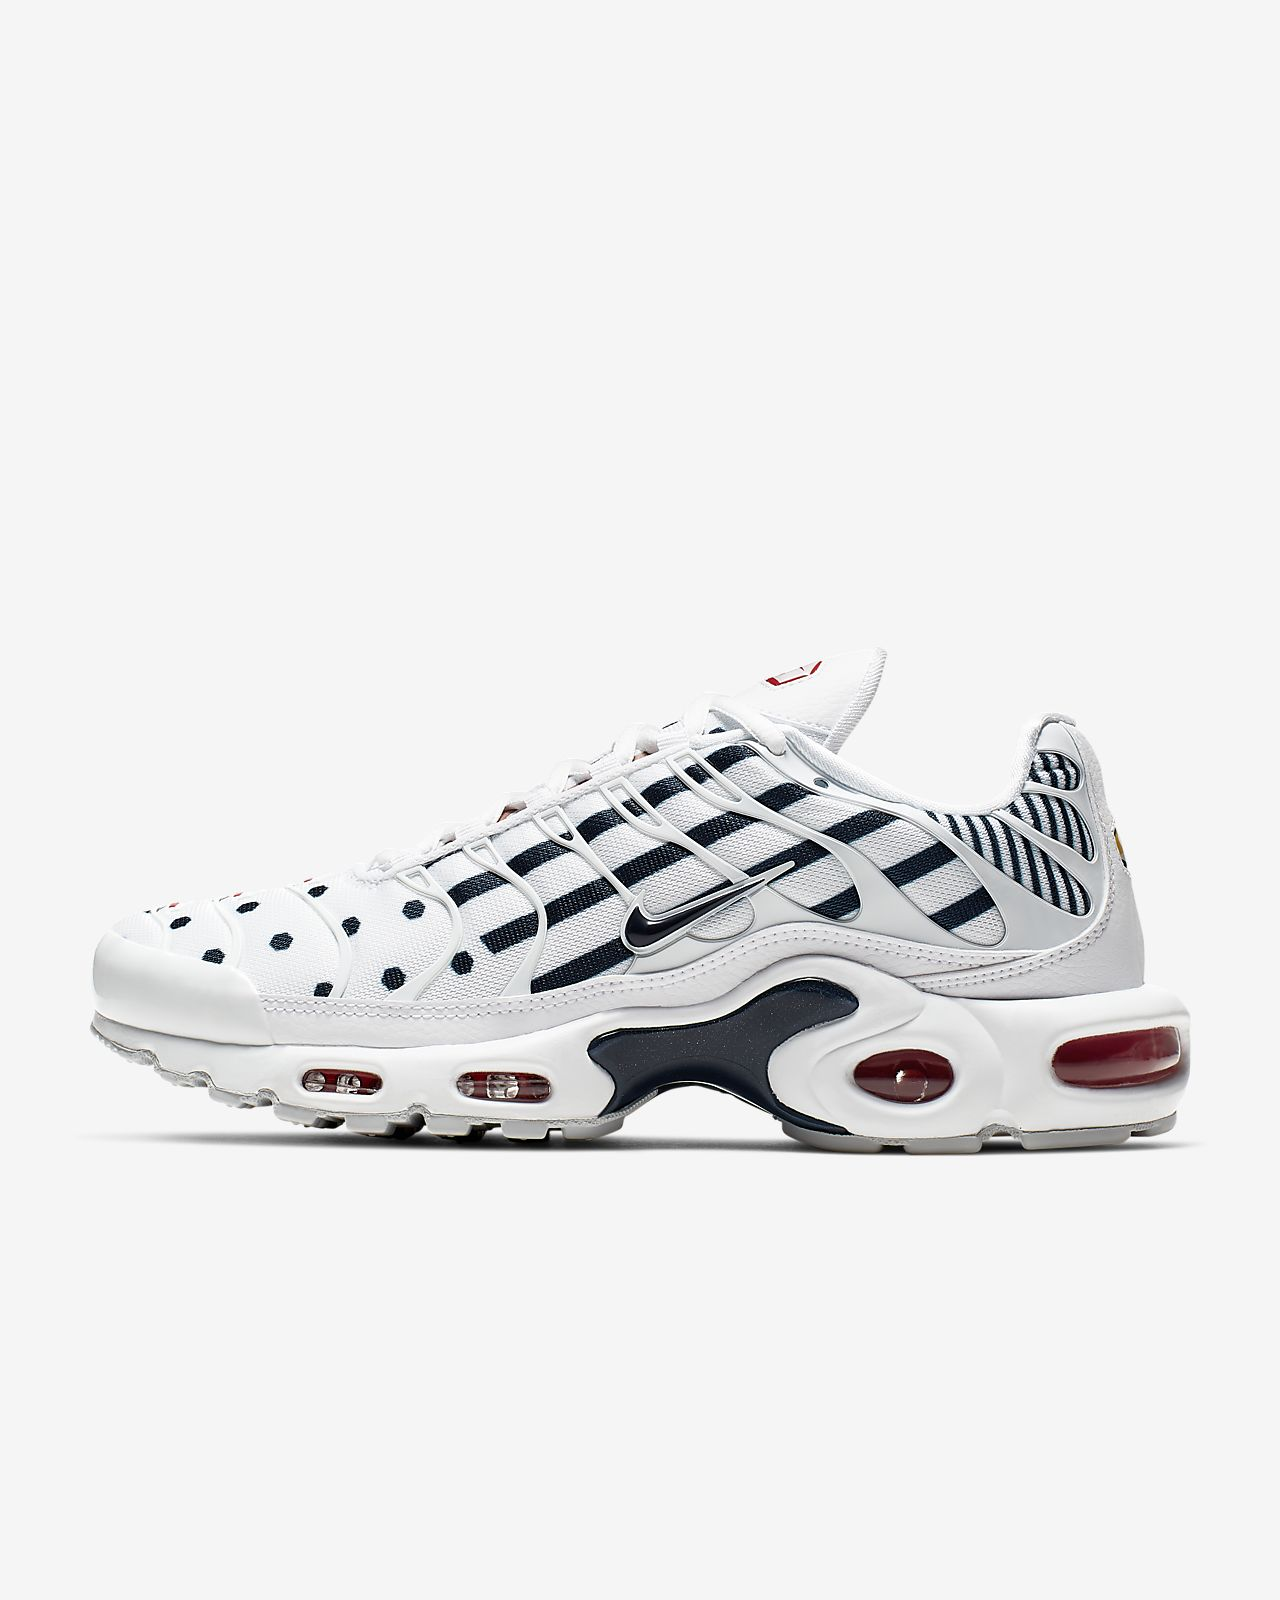 f2086fc2be Nike Air Max Plus TN Unité Totale Women's Shoe. Nike.com GB